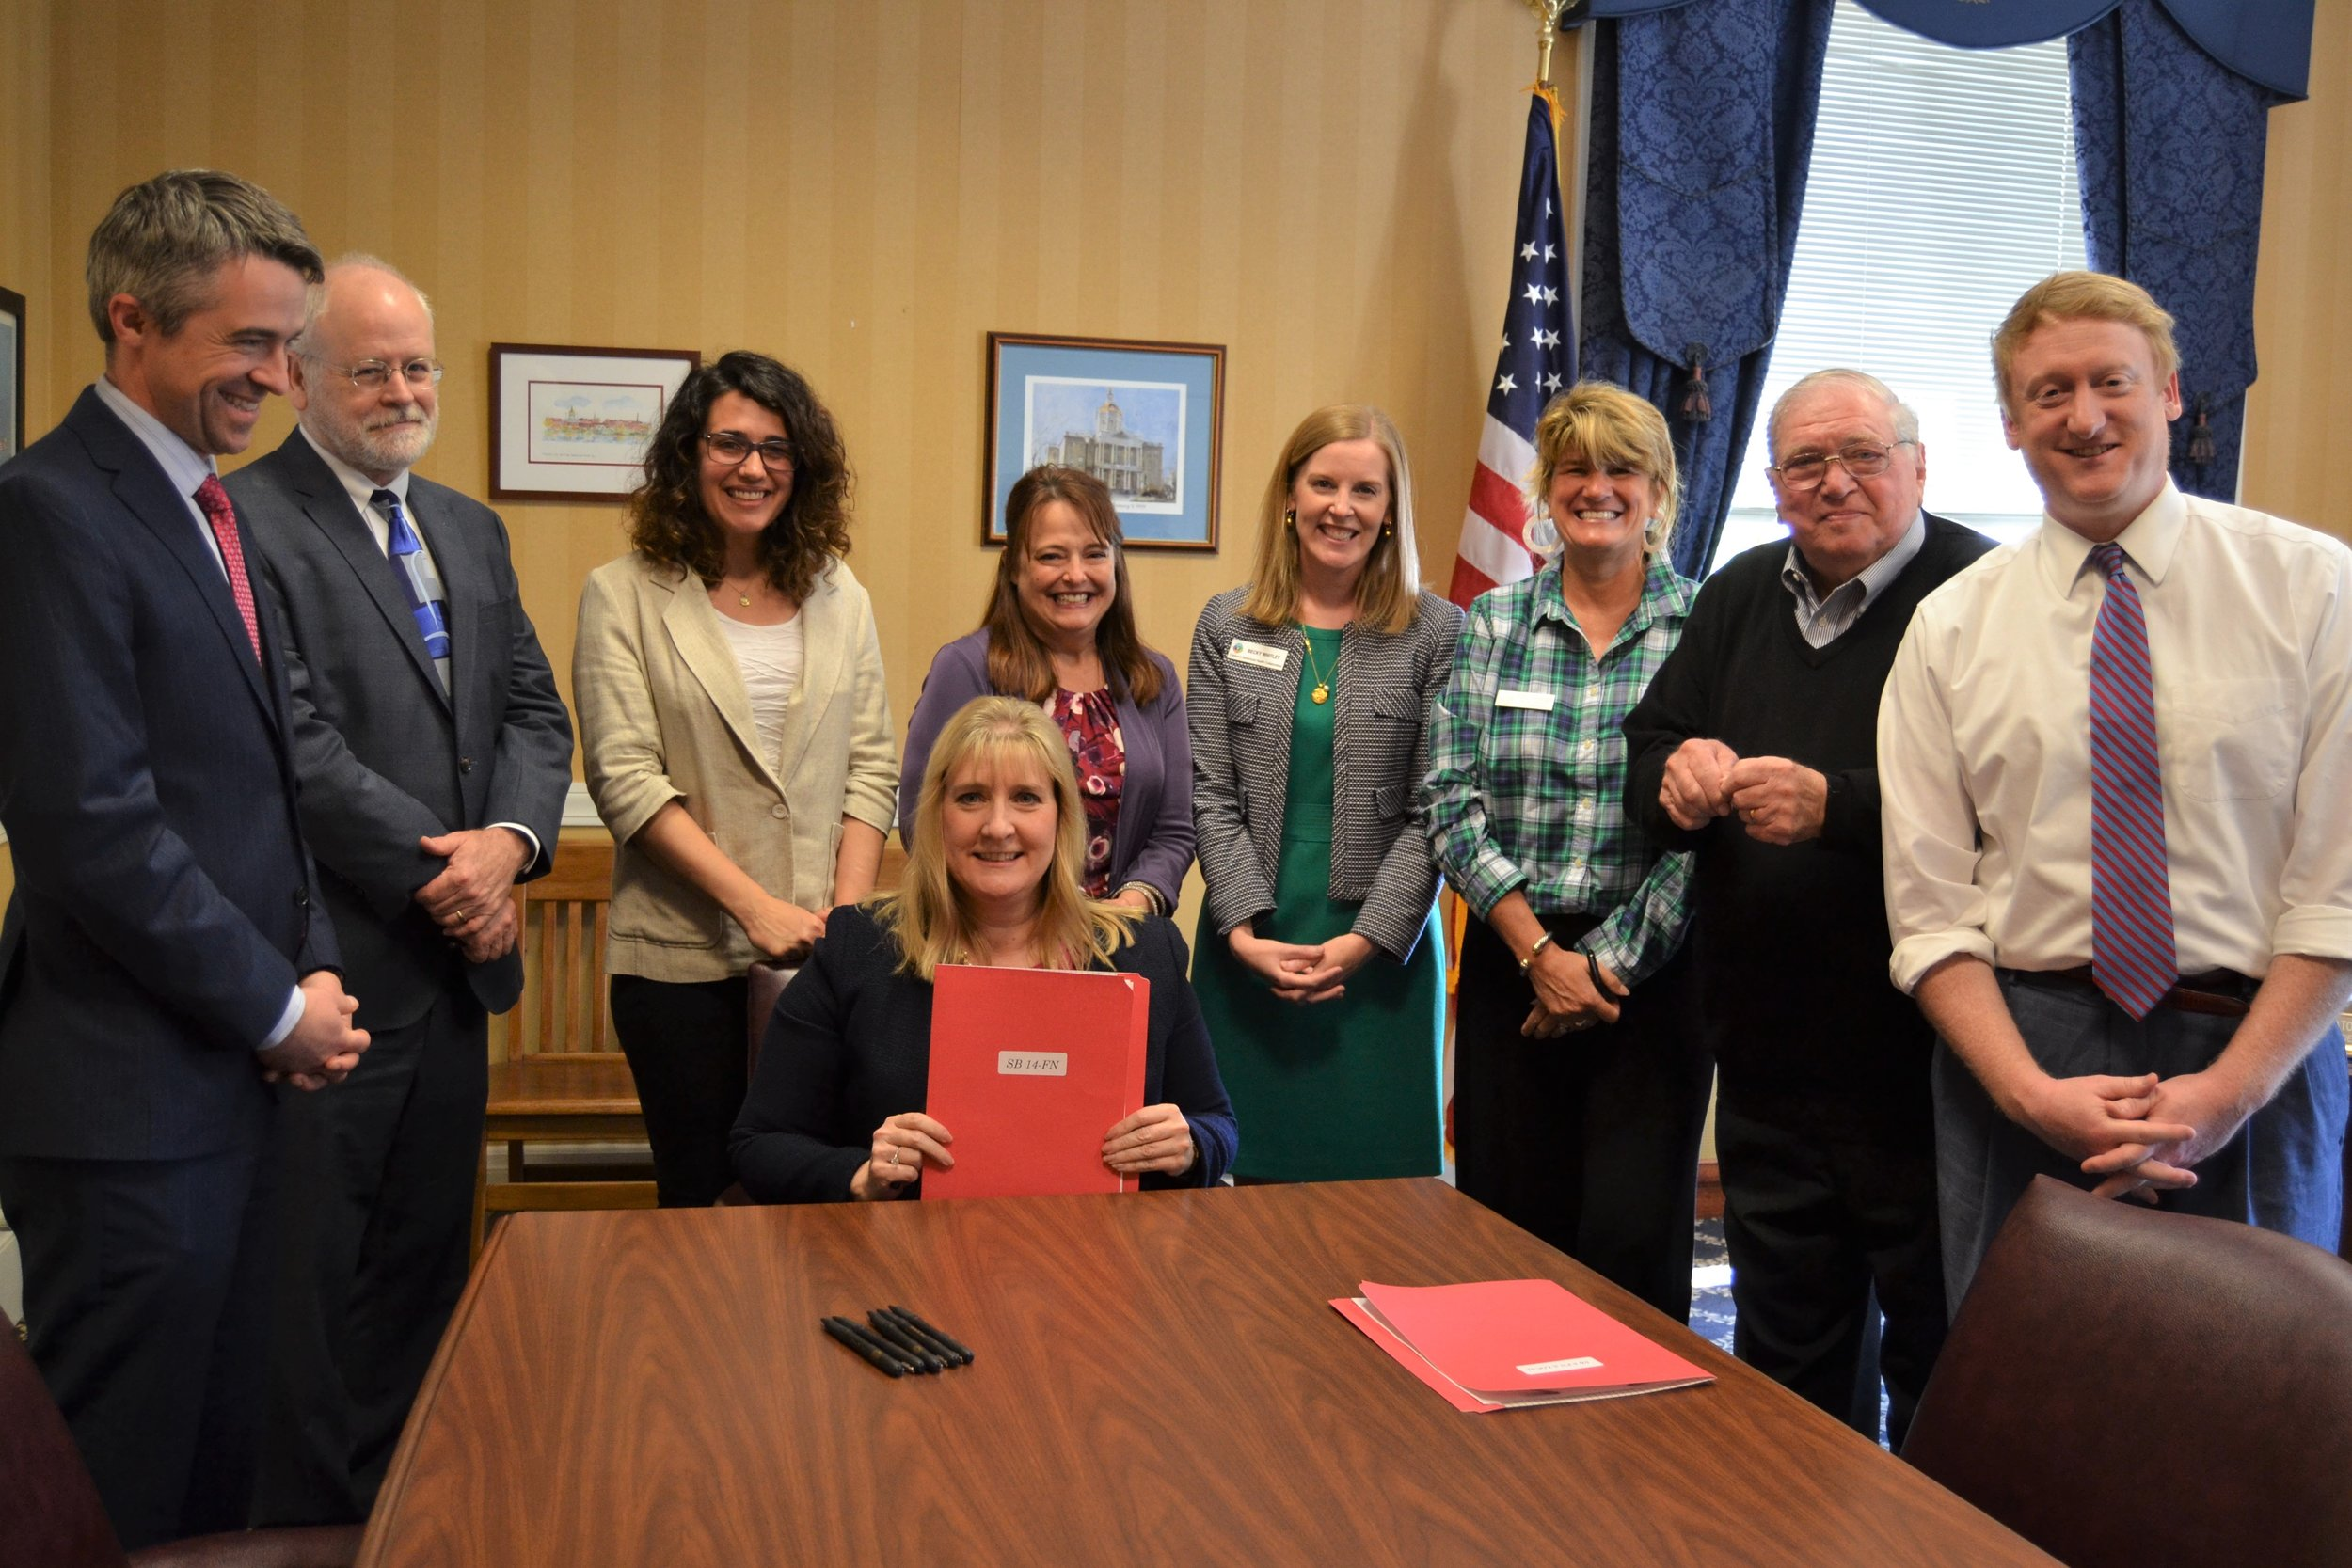 Reach 1 honored to witness the signing of SB 14 into law, by New Hampshire's Senate President, Diane Soucy, June 3, 2019. Great advances made for the welfare of our youth!